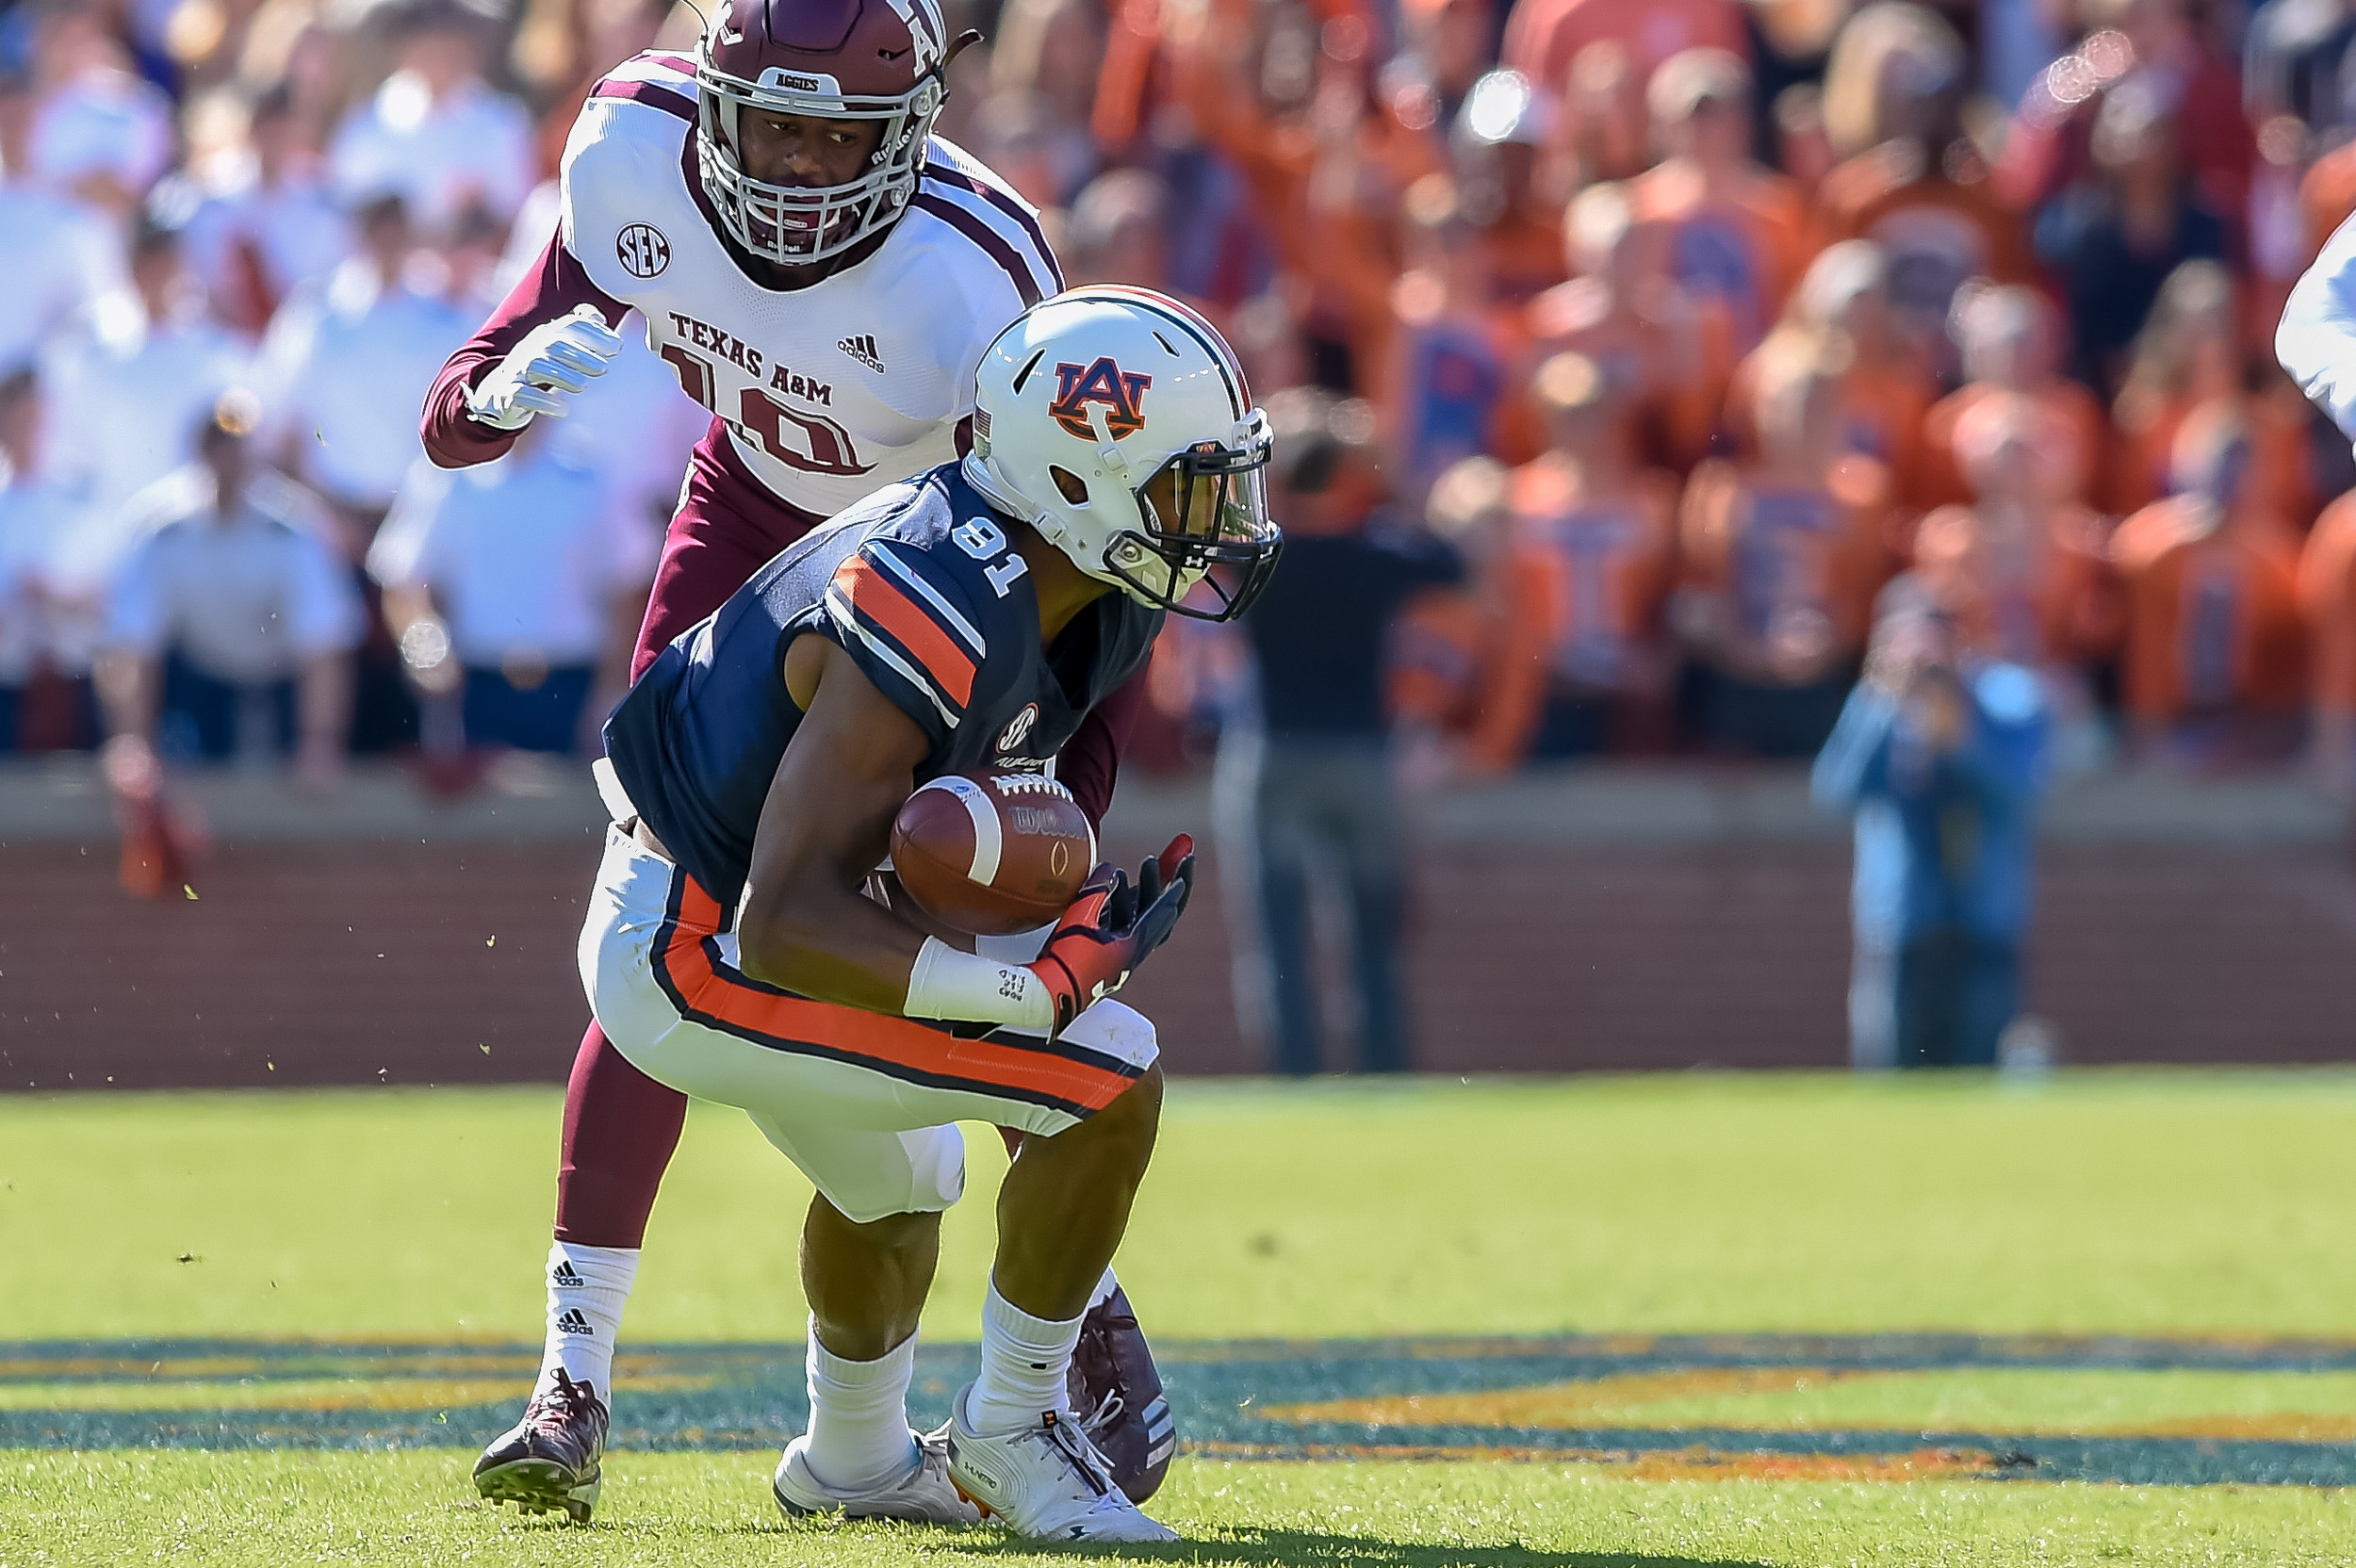 Auburn Tigers wide receiver Darius Slayton (81) can't make the catch during the first half of an NCAA football game against the Texas A&M Aggies Saturday, November 3, 2018, at Jordan-Hare Stadium in Auburn, Ala. (Photo by Jeff Johnsey)